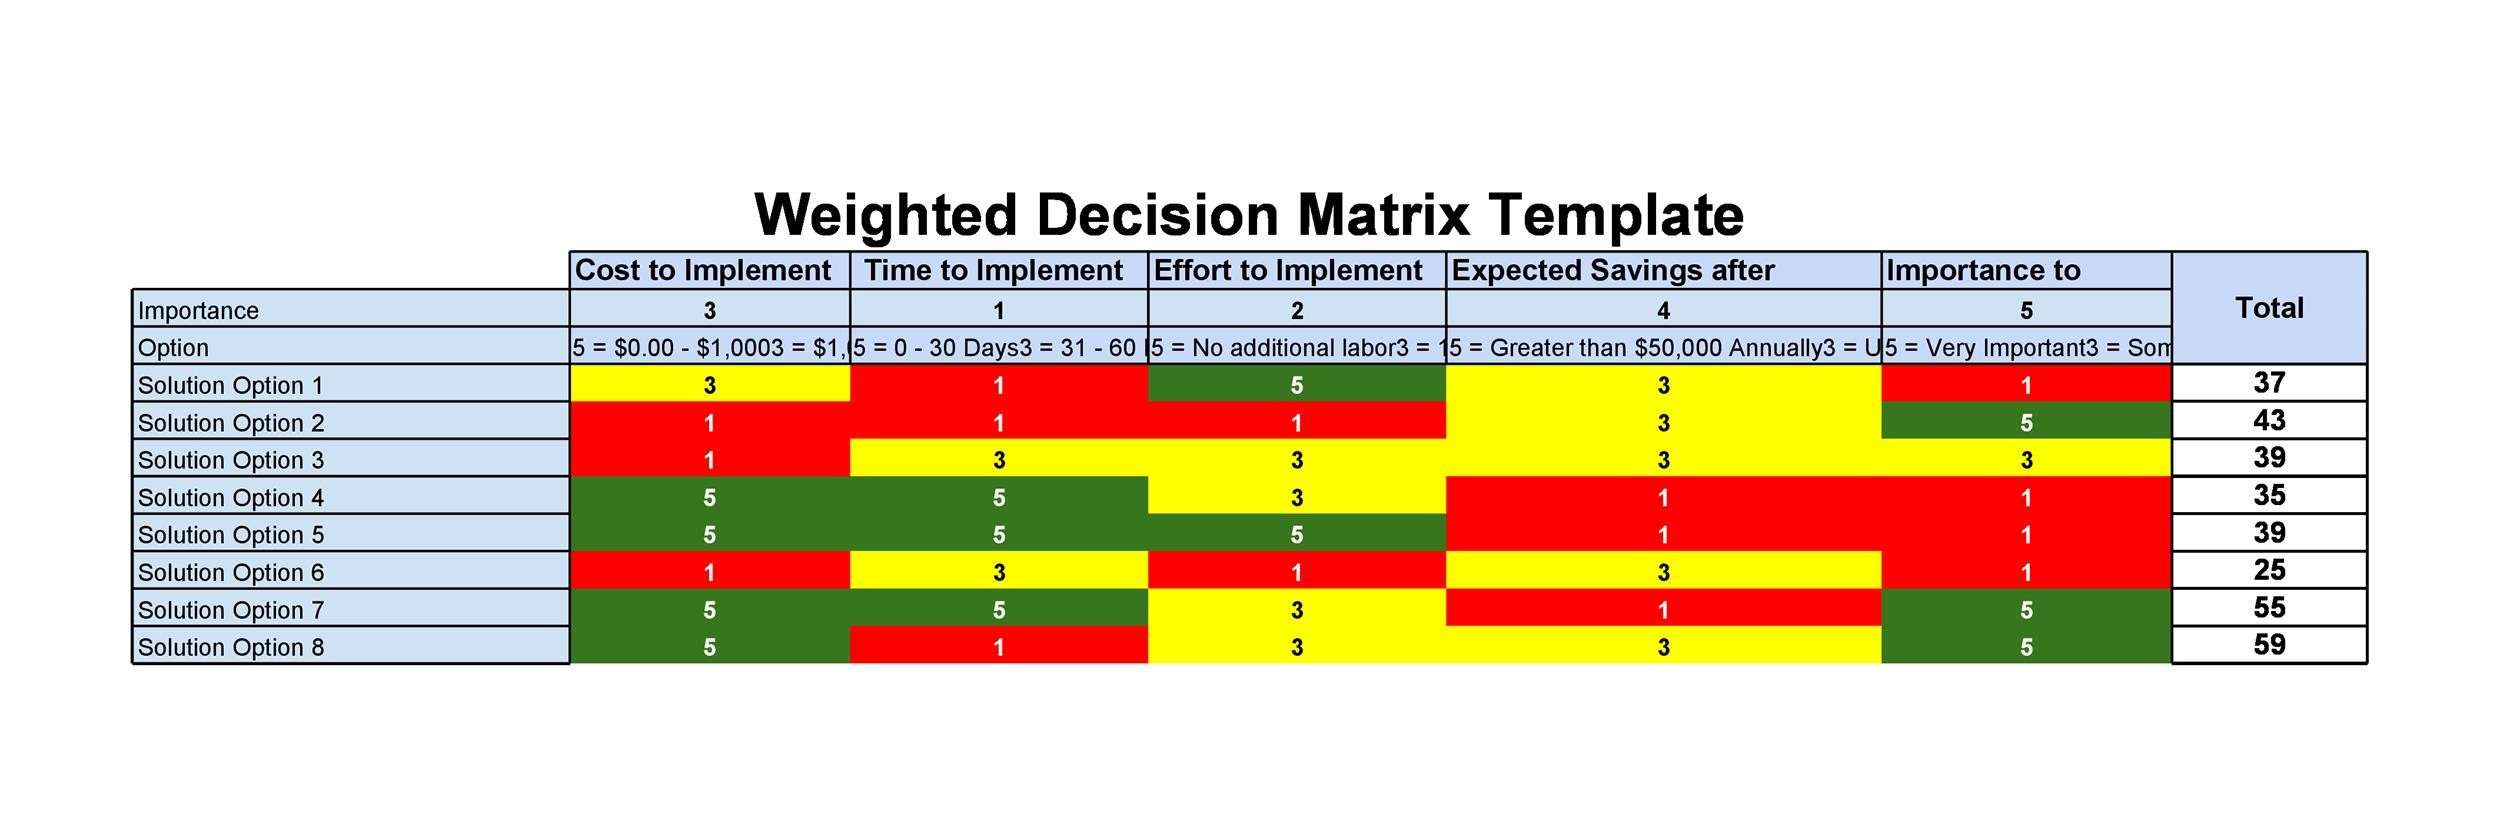 Weighted Decision Matrix Template Tutore